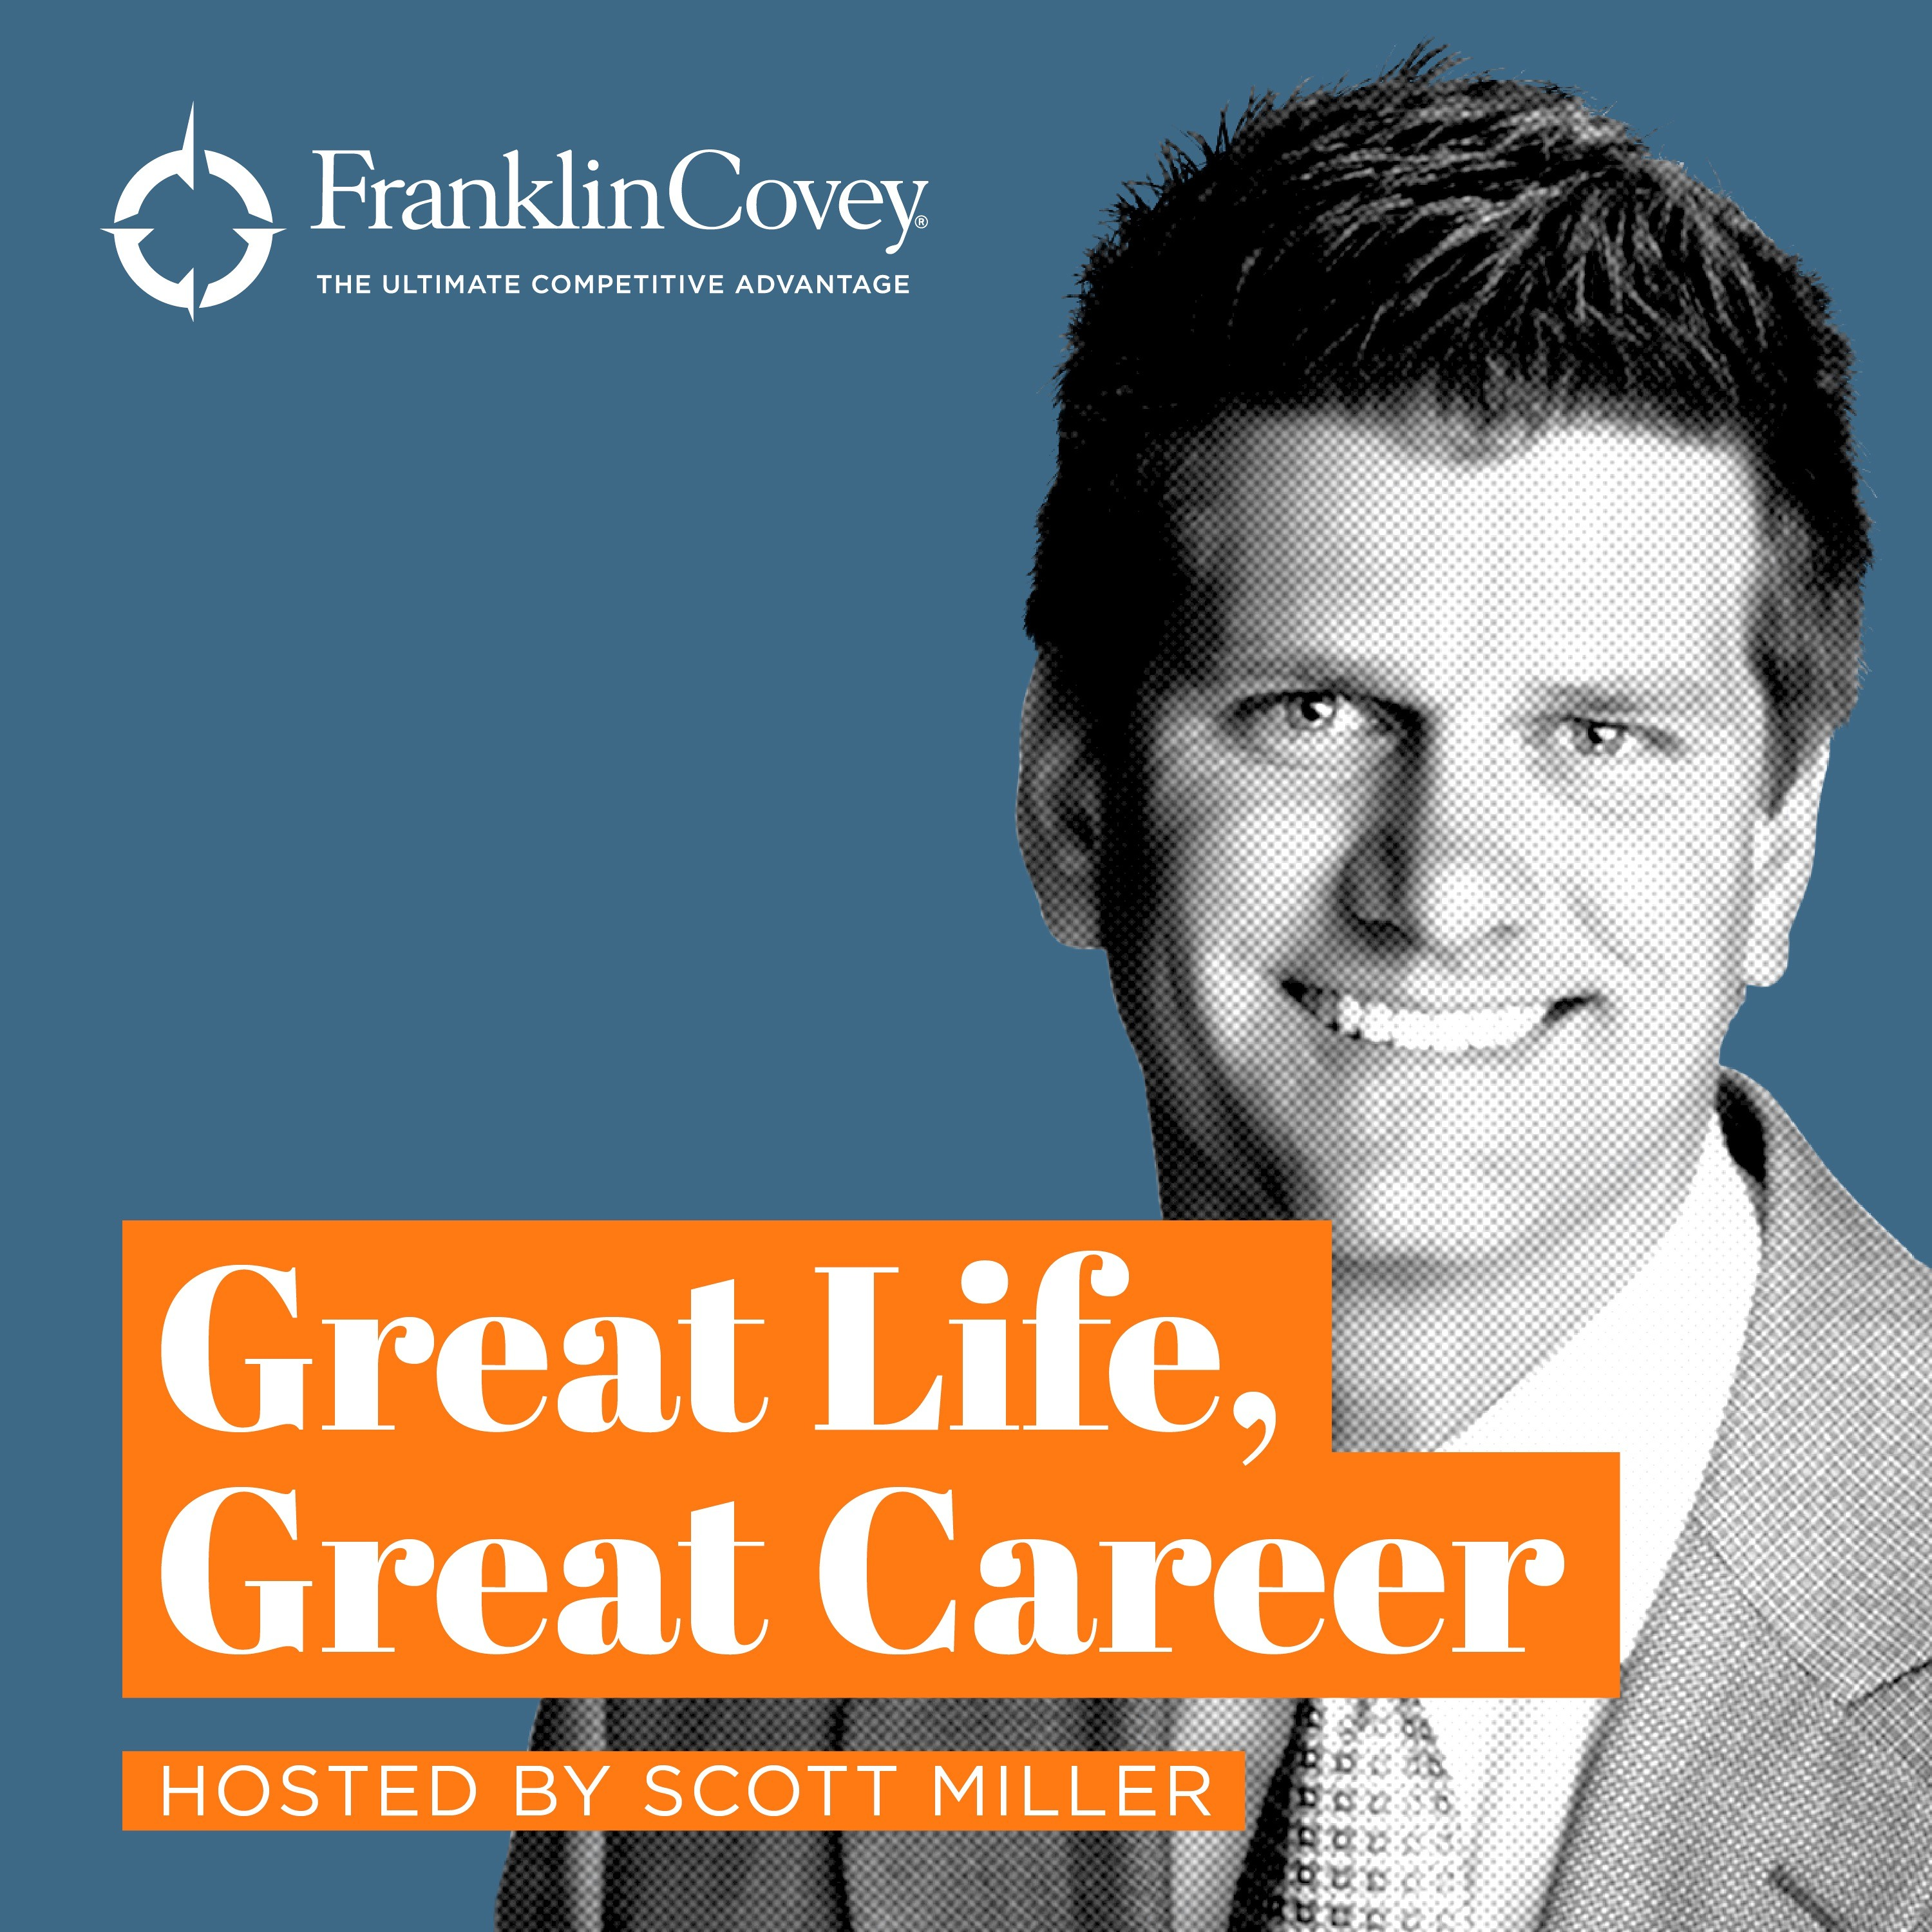 Episode #38: How do you build a great team with author Chester Elton